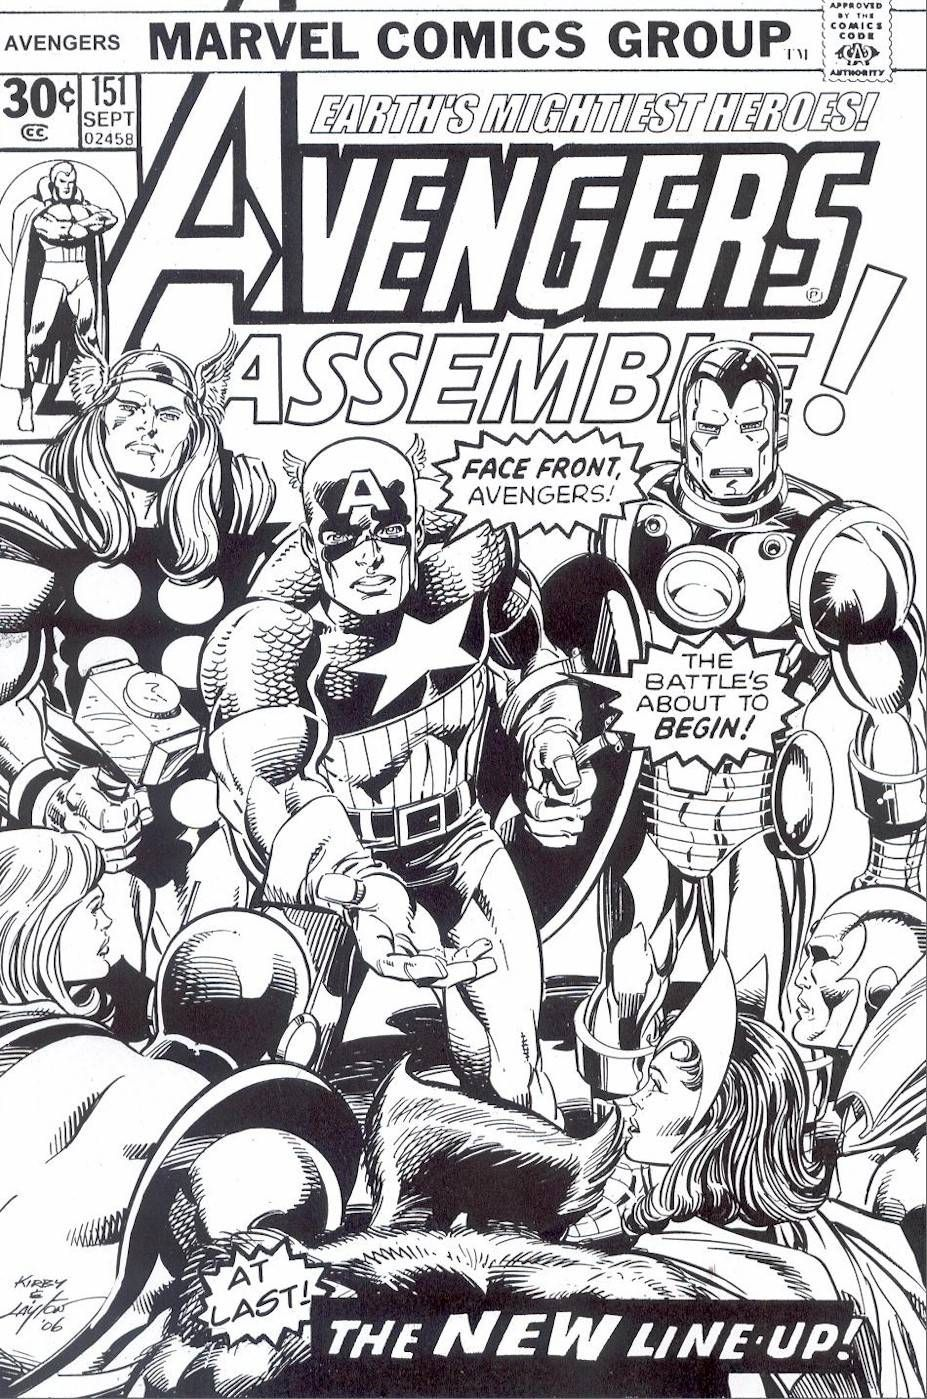 Coloring For Stress Relief 2 Free Download Borrow And Streaming Internet Archive Avengers Coloring Avengers Coloring Pages Marvel Coloring